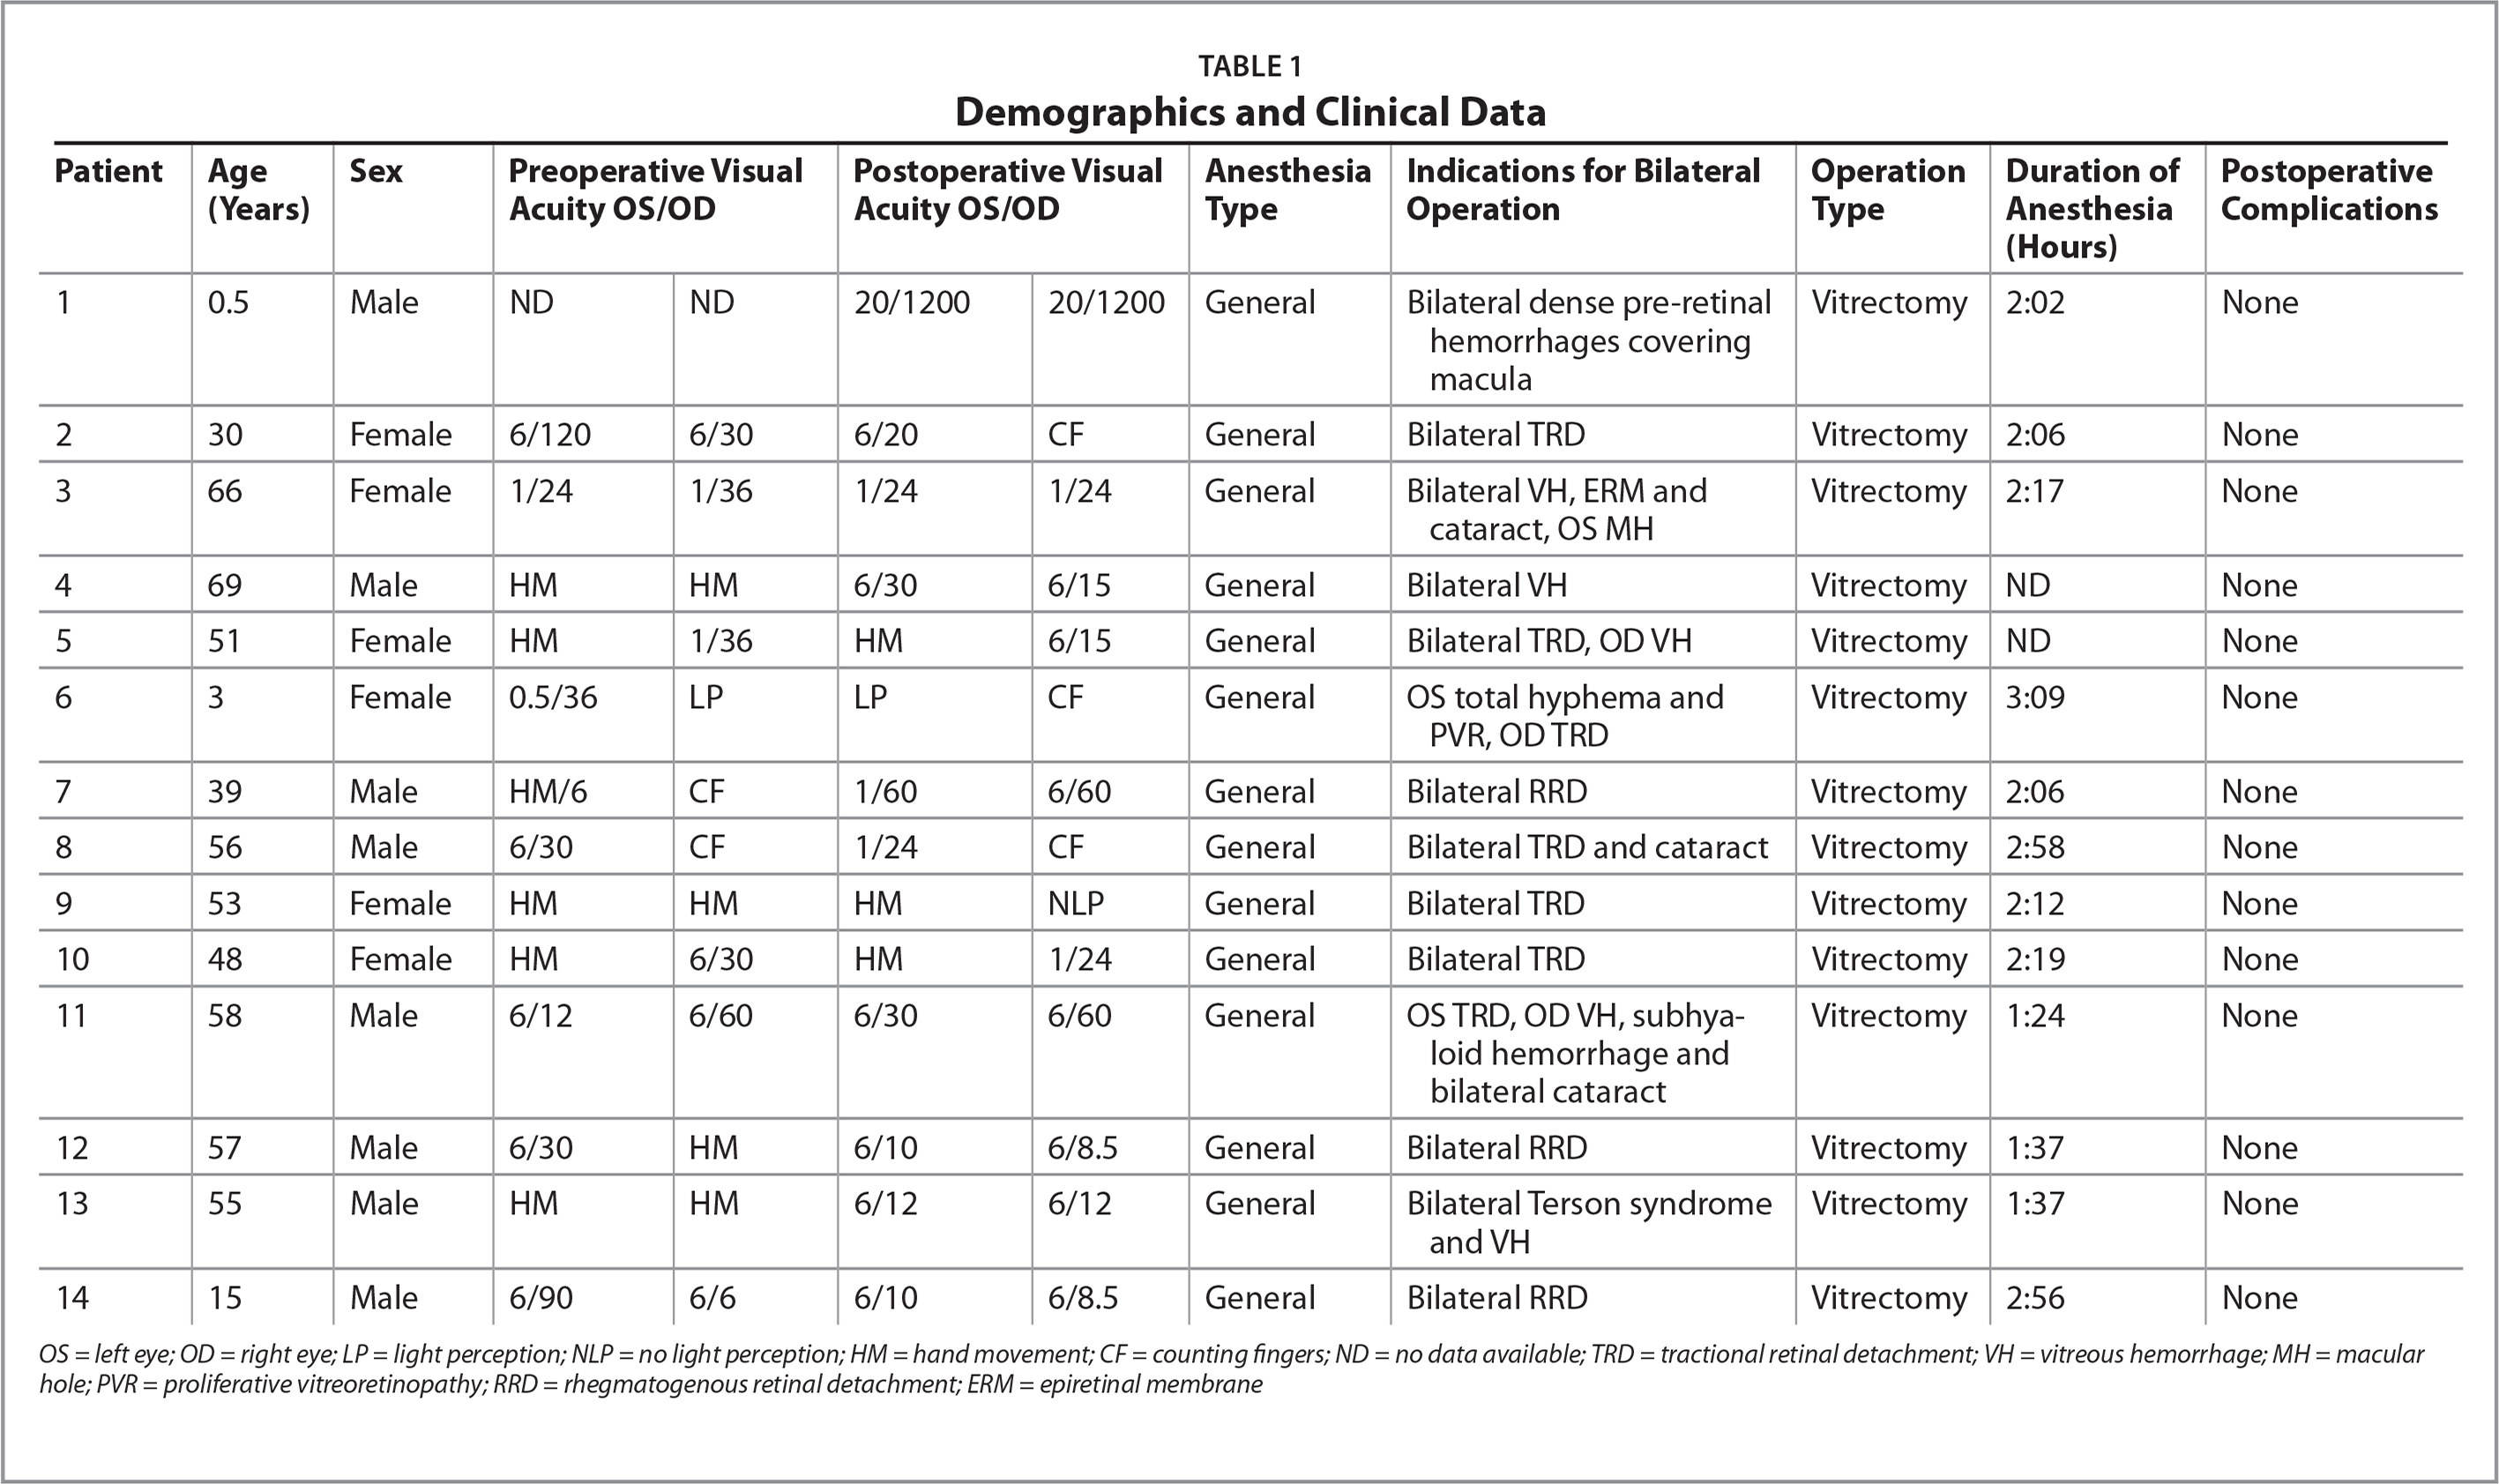 Demographics and Clinical Data